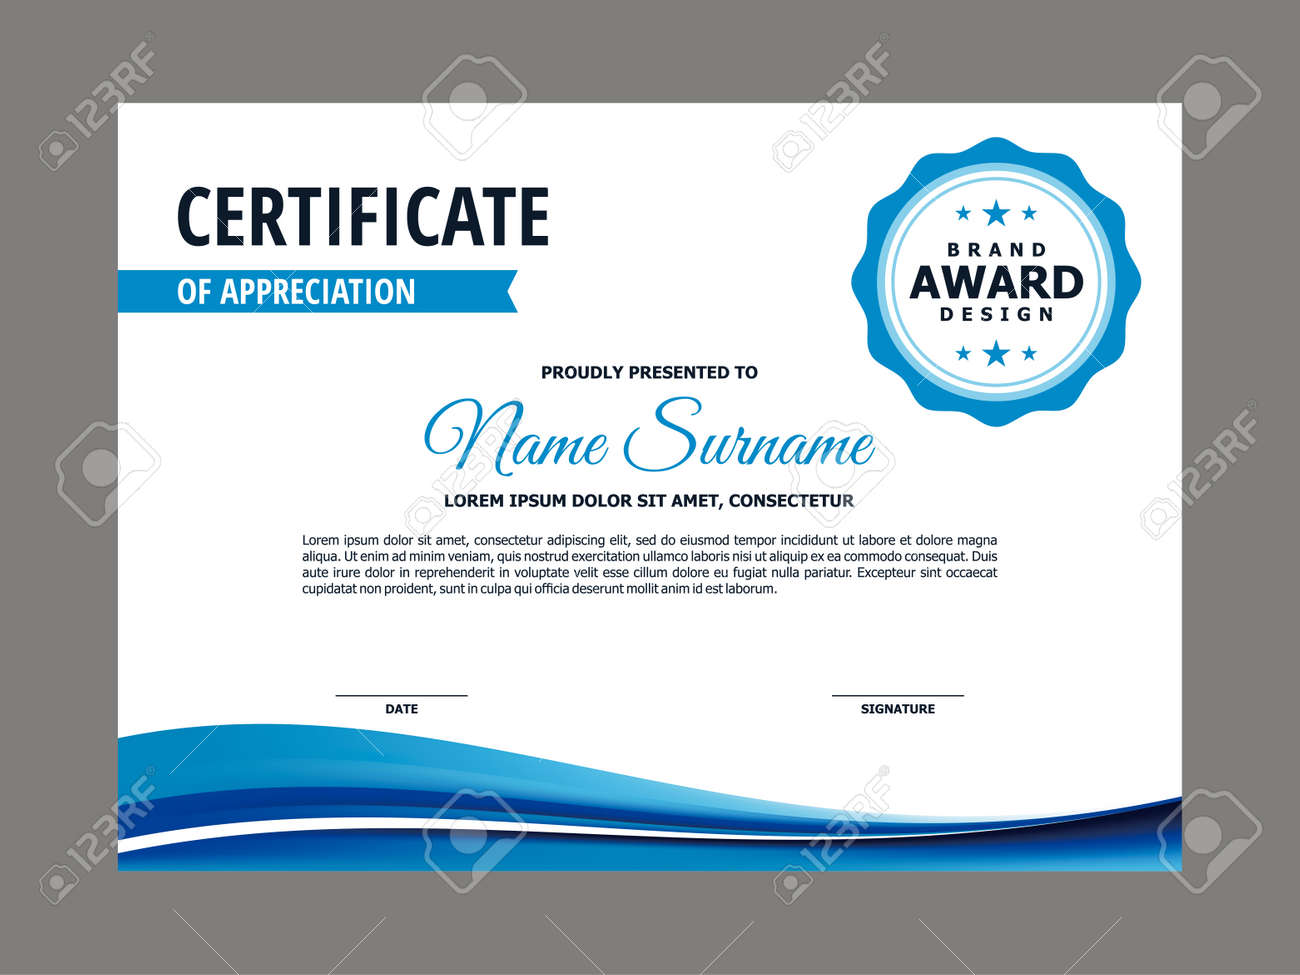 Abstract Smooth Certificate with Blue Wavy Element Design, Professional, Modern, Elegant Certificate with Fresh Flowing Mesh Gradient Background Template Vector - 166850192